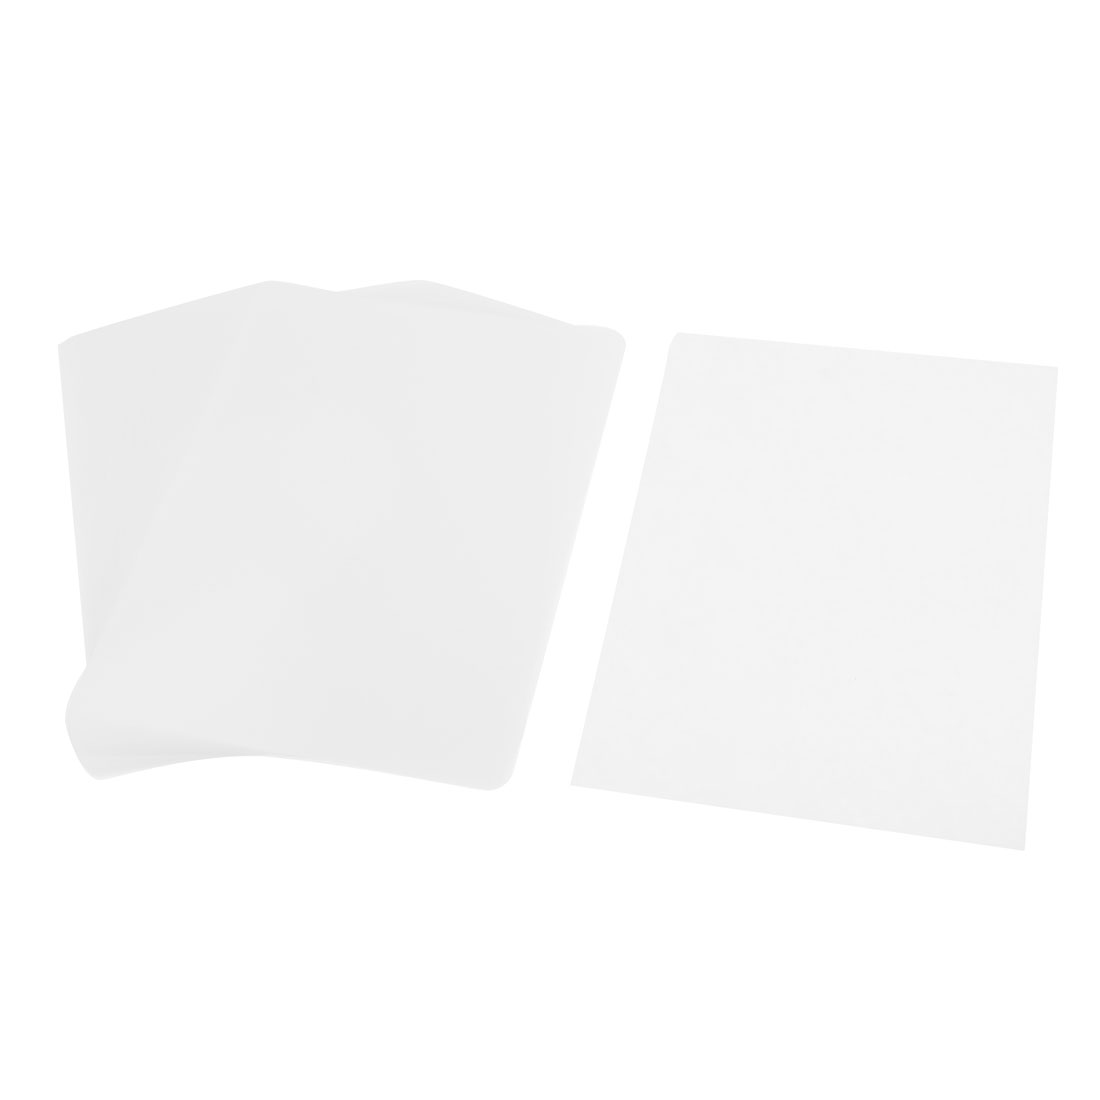 100 Pcs 135mm x188mm 55 Mic 5R Photo Paper Cards Laminating Pouch Film